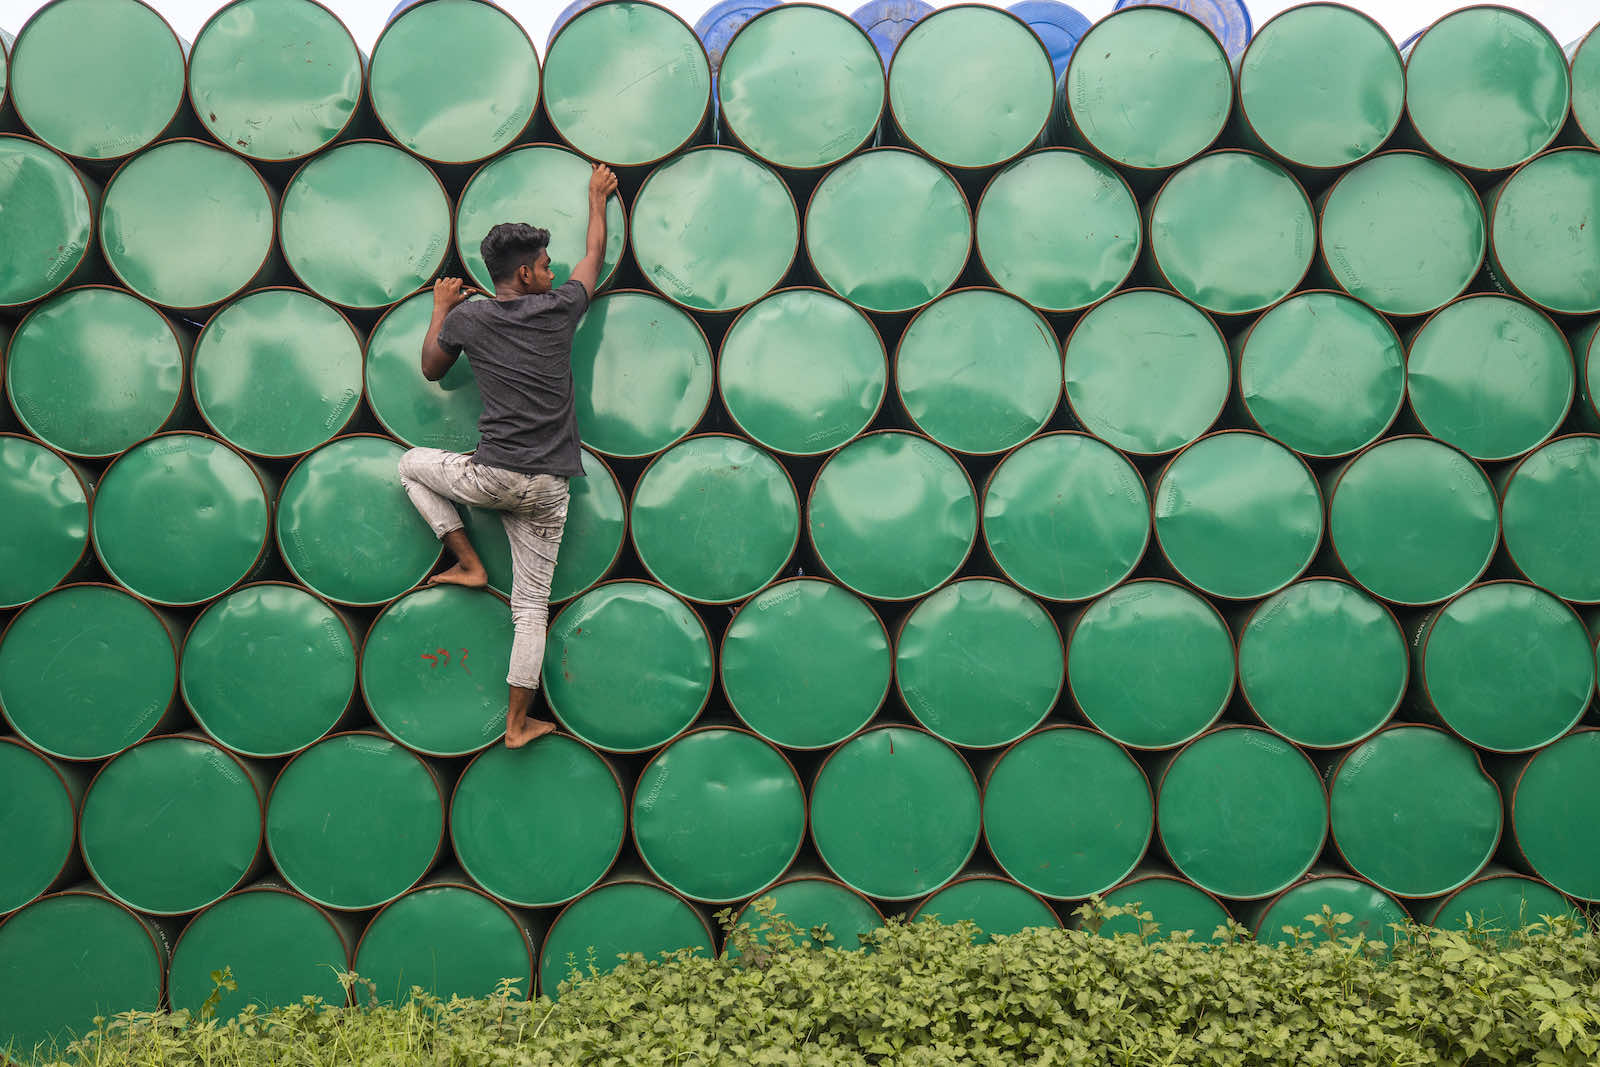 Empty oil drums at a warehouse in Narayanganj on 19 May (Ahmed Salahuddin/NurPhoto via Getty Images)